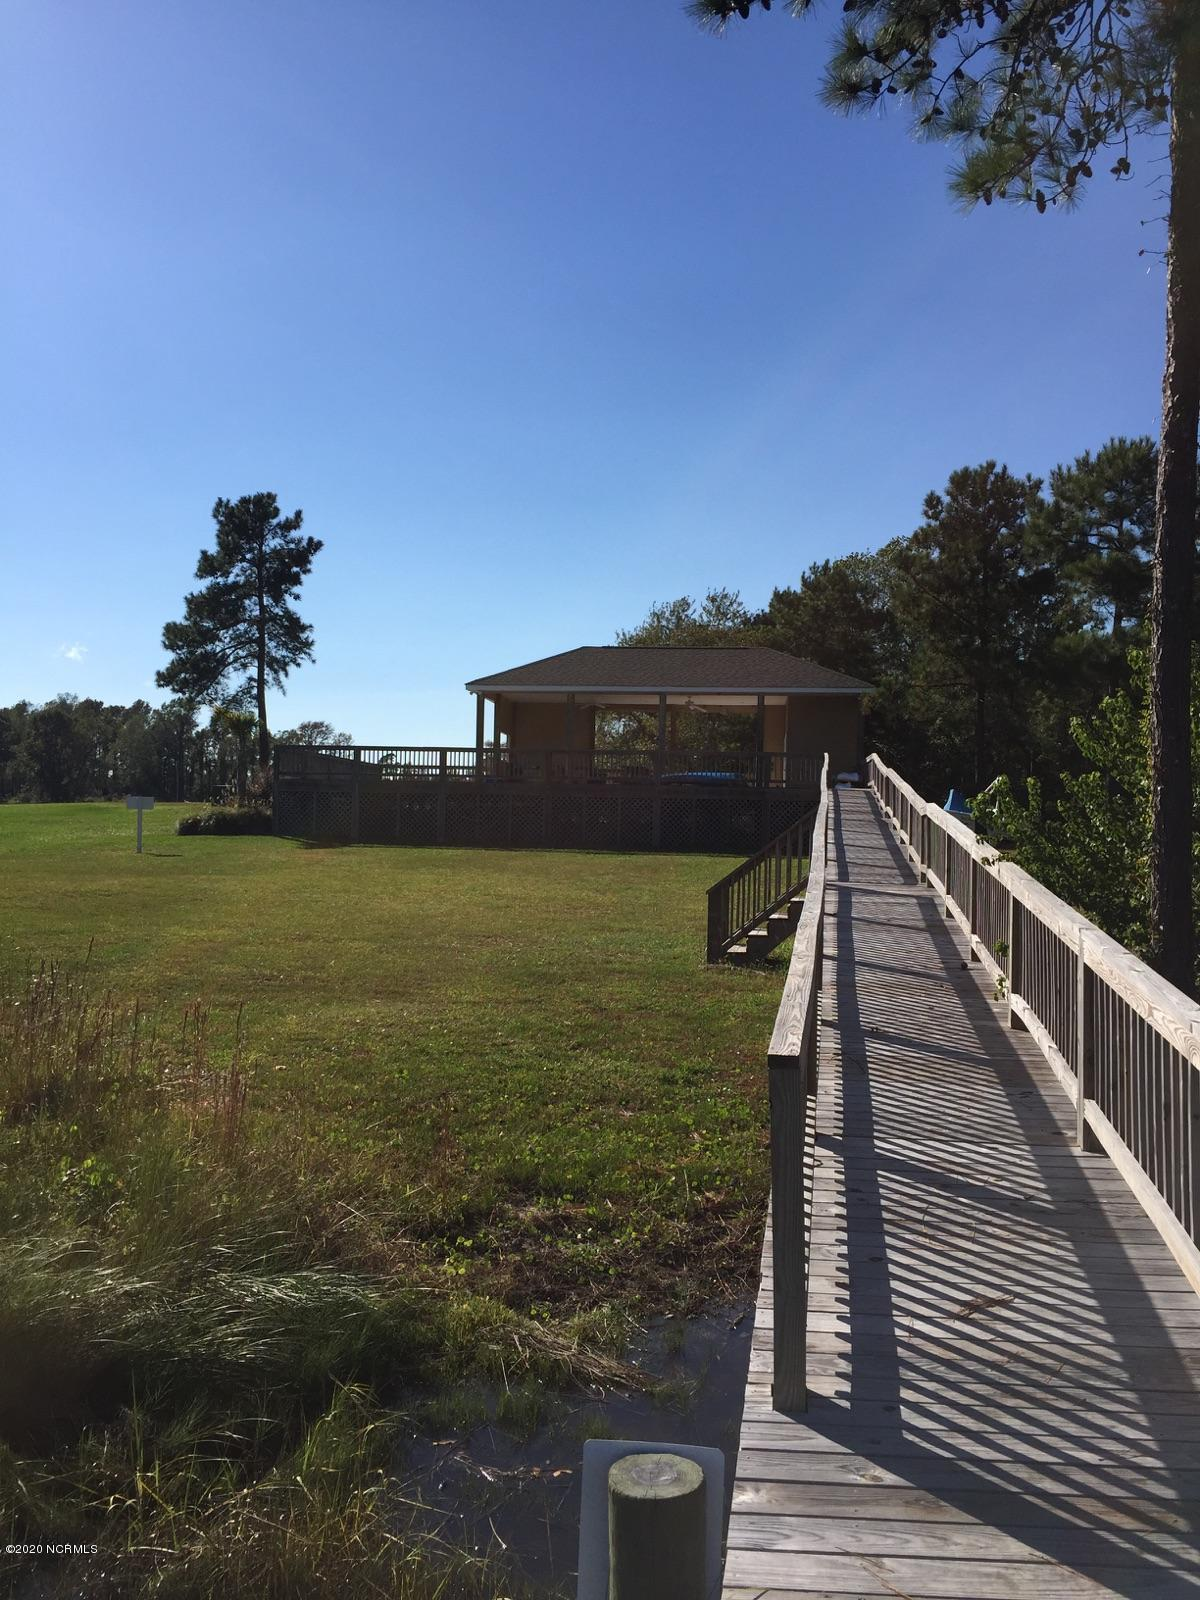 403 Garland Shores Drive, Swansboro, North Carolina 28584, 3 Bedrooms Bedrooms, 5 Rooms Rooms,2 BathroomsBathrooms,Single family residence,For sale,Garland Shores,100219411